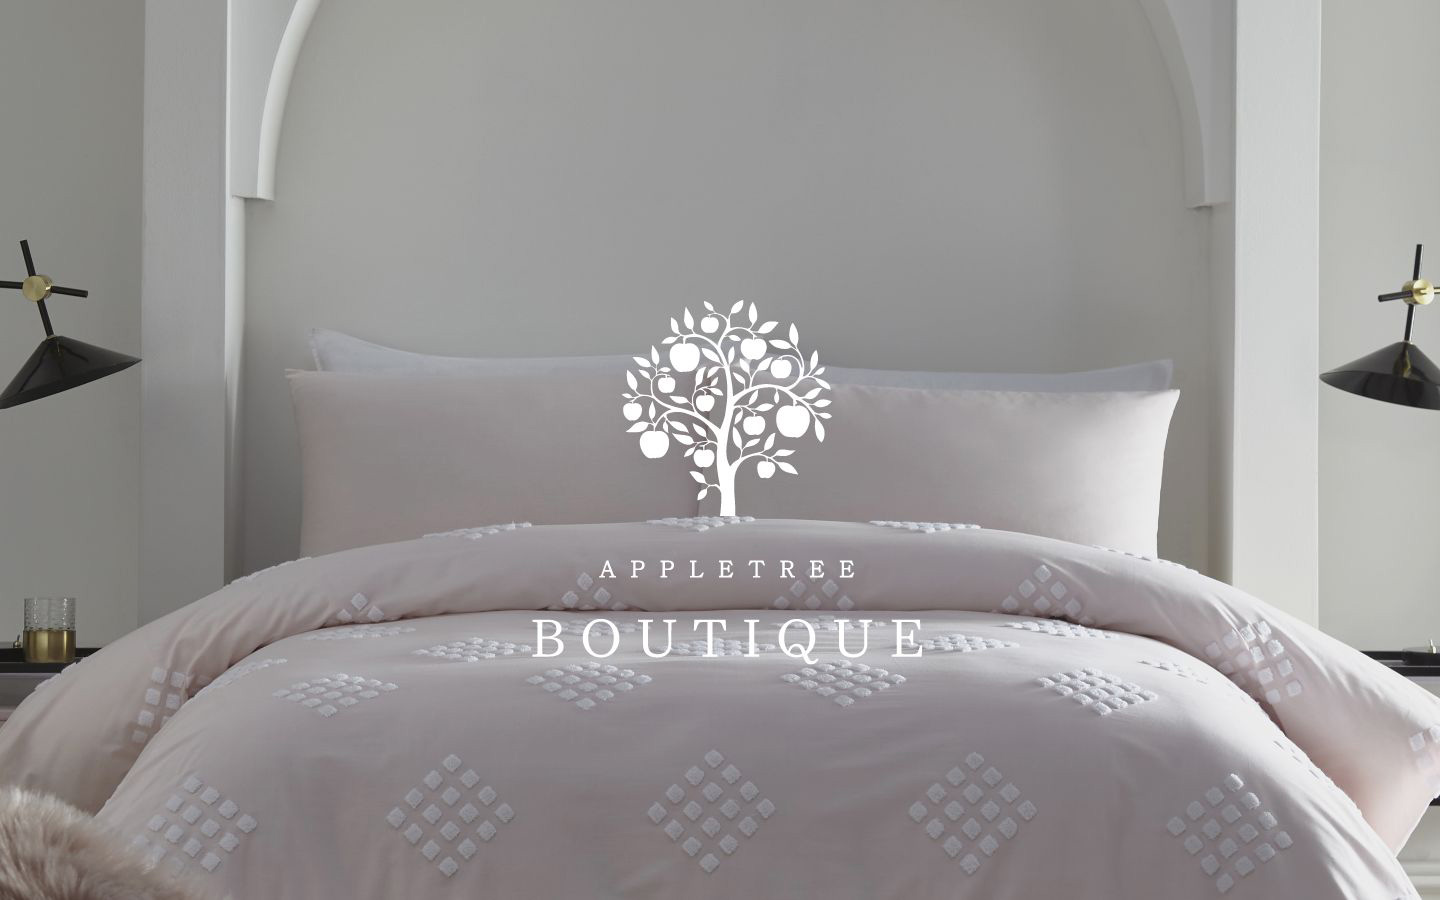 Luxurious Appletree Plain Dye Bedding 100/% Cotton Fitted Percale Bed Sheets